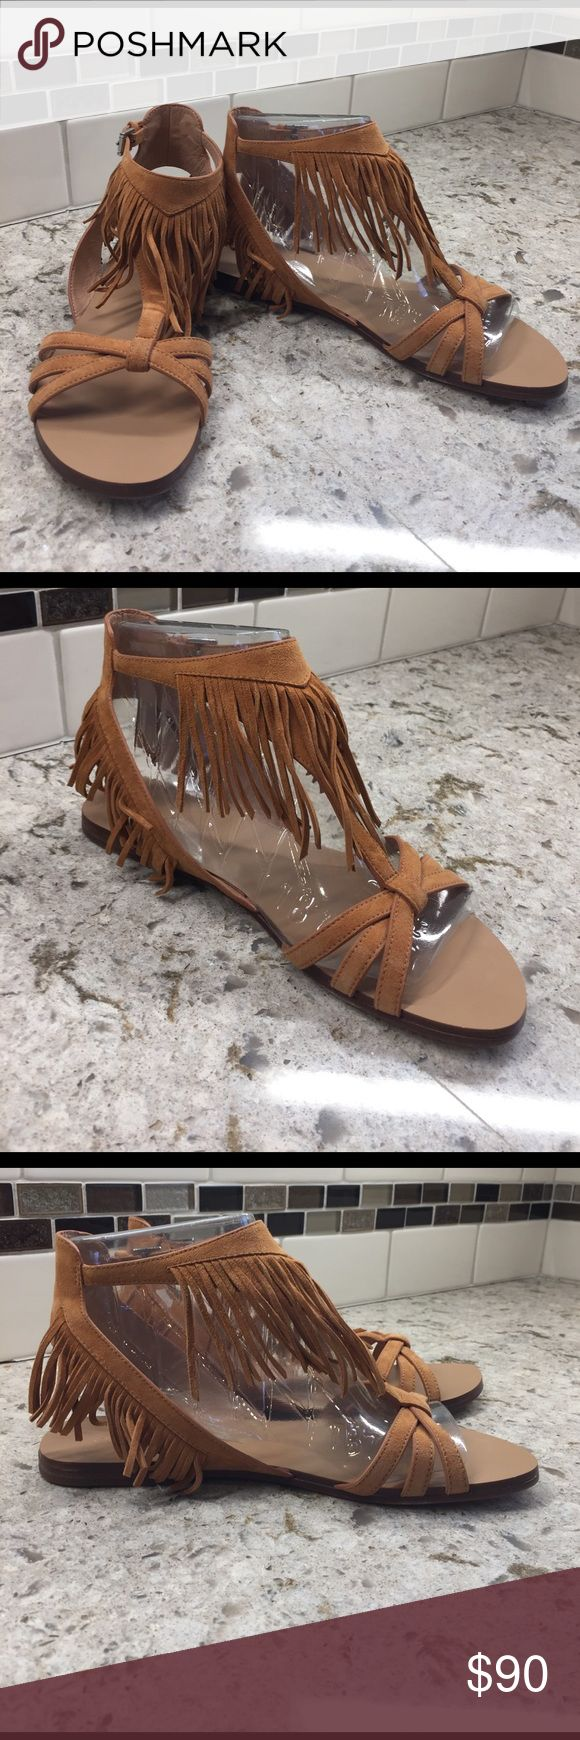 "Sigerson Morrison ""Bross"" kid skin fringe sandal New in box beautifully crafted all leather sandal.  Fun Suede fringe detail uppers and all leather stitched sole! Sigerson Morrison Shoes Sandals"